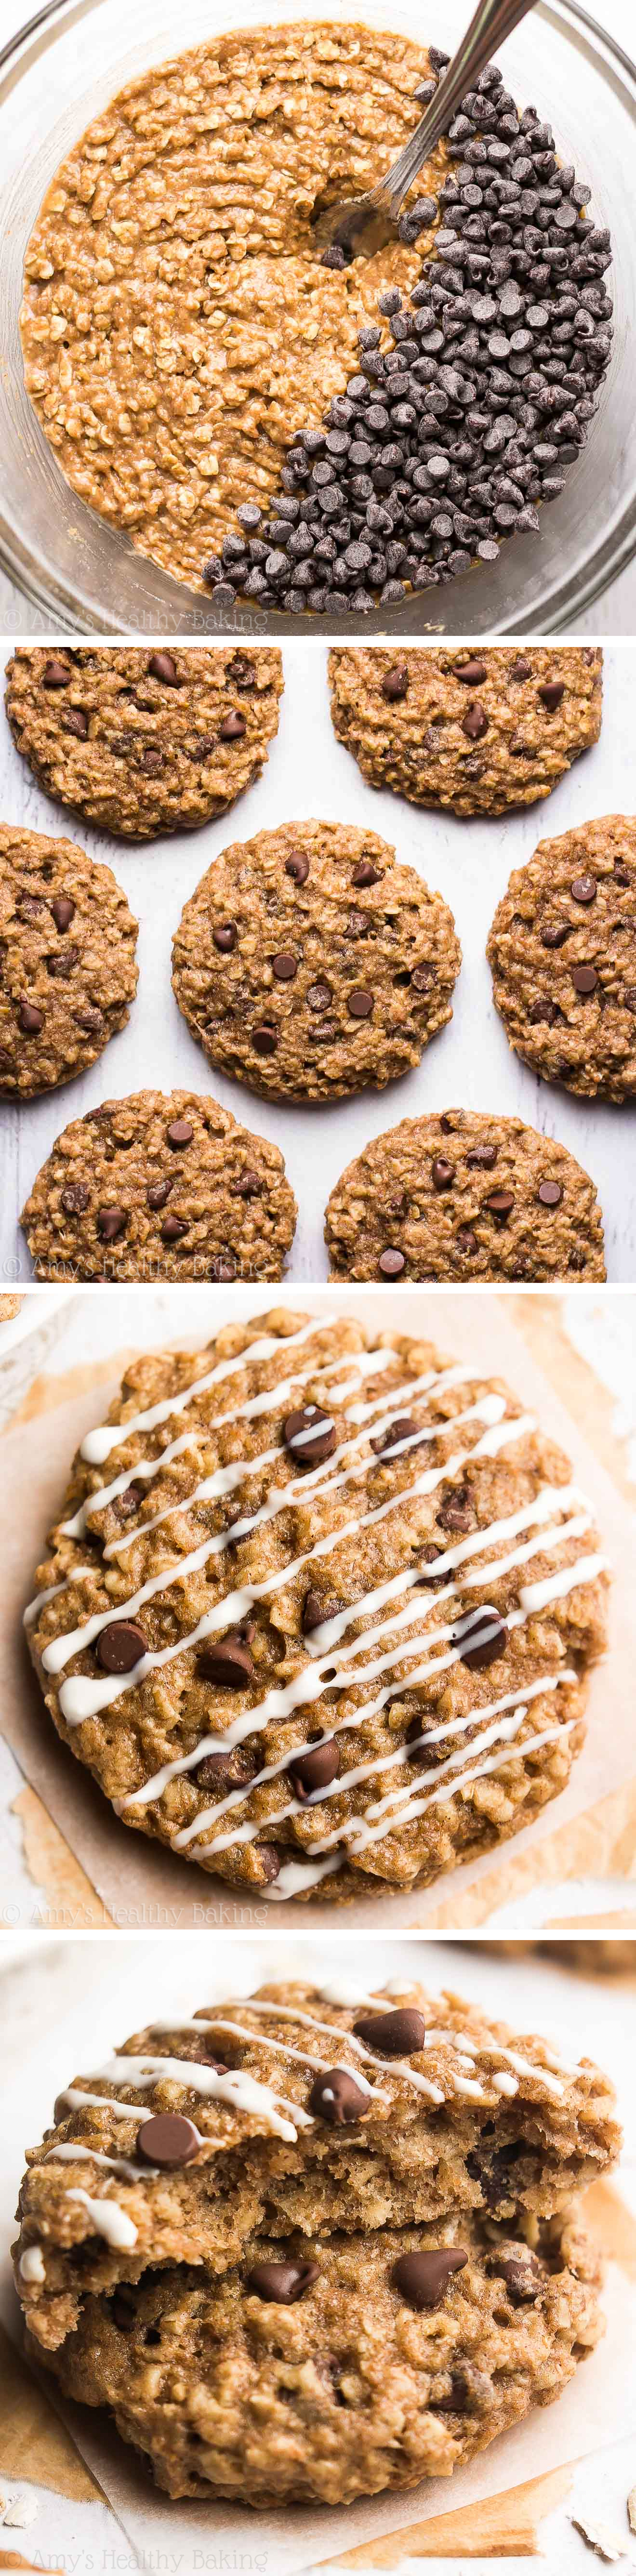 Skinny Chocolate Chip Cheesecake Oatmeal Cookies -- just 103 calories, but these cookies don't taste healthy at all! You'll never need another oatmeal cookie recipe again!